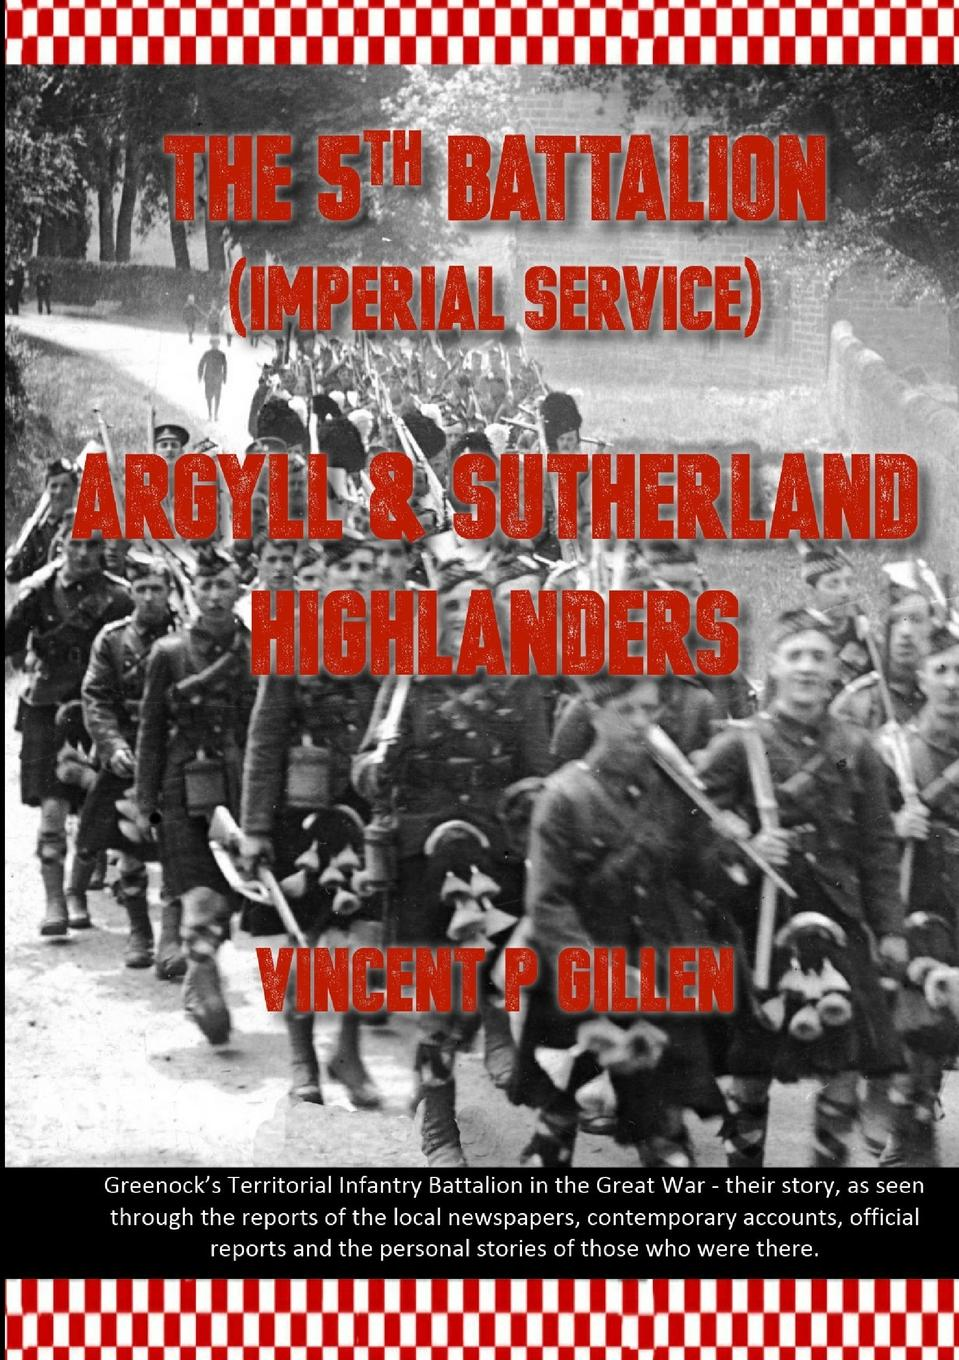 Vincent P. Gillen The 5th Battalion - Imperial Service - Argyll . Sutherland Highlanders john percy groves history of the 42nd royal highlanders the black watch now the first battalion the black watch royal highlanders 1729 1893 illustrated by harry payne